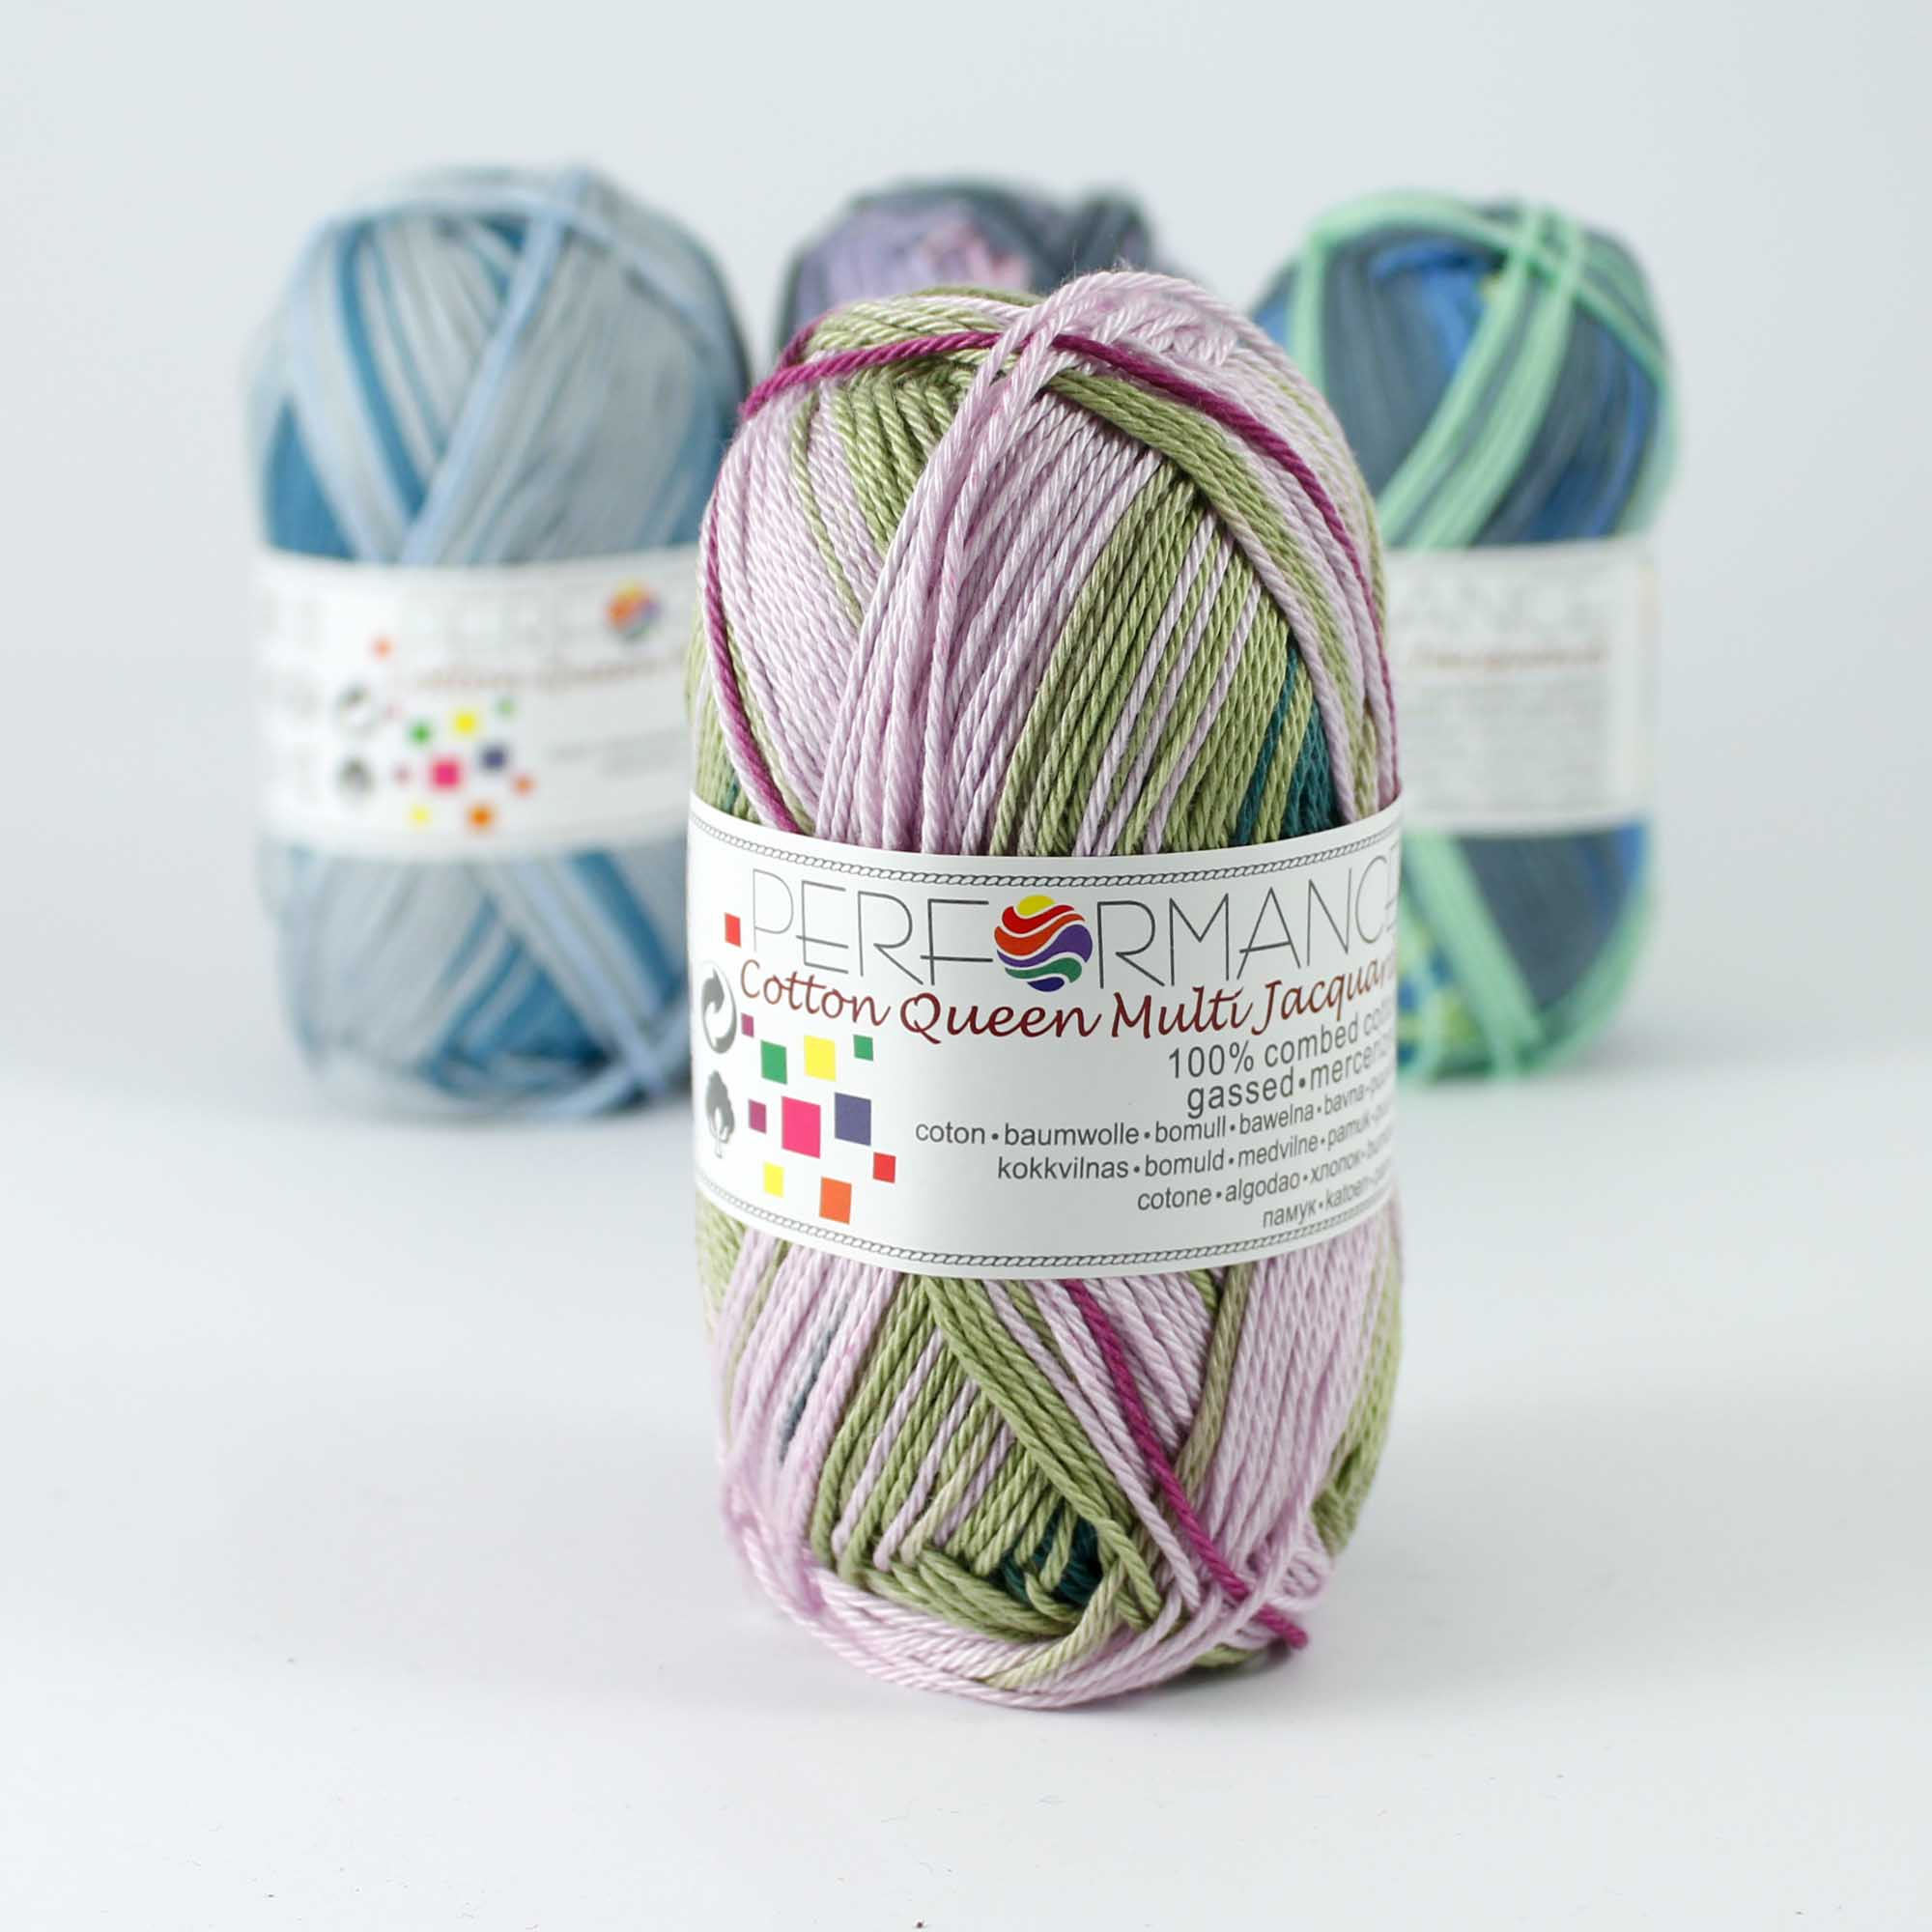 Cotton Queen Multi